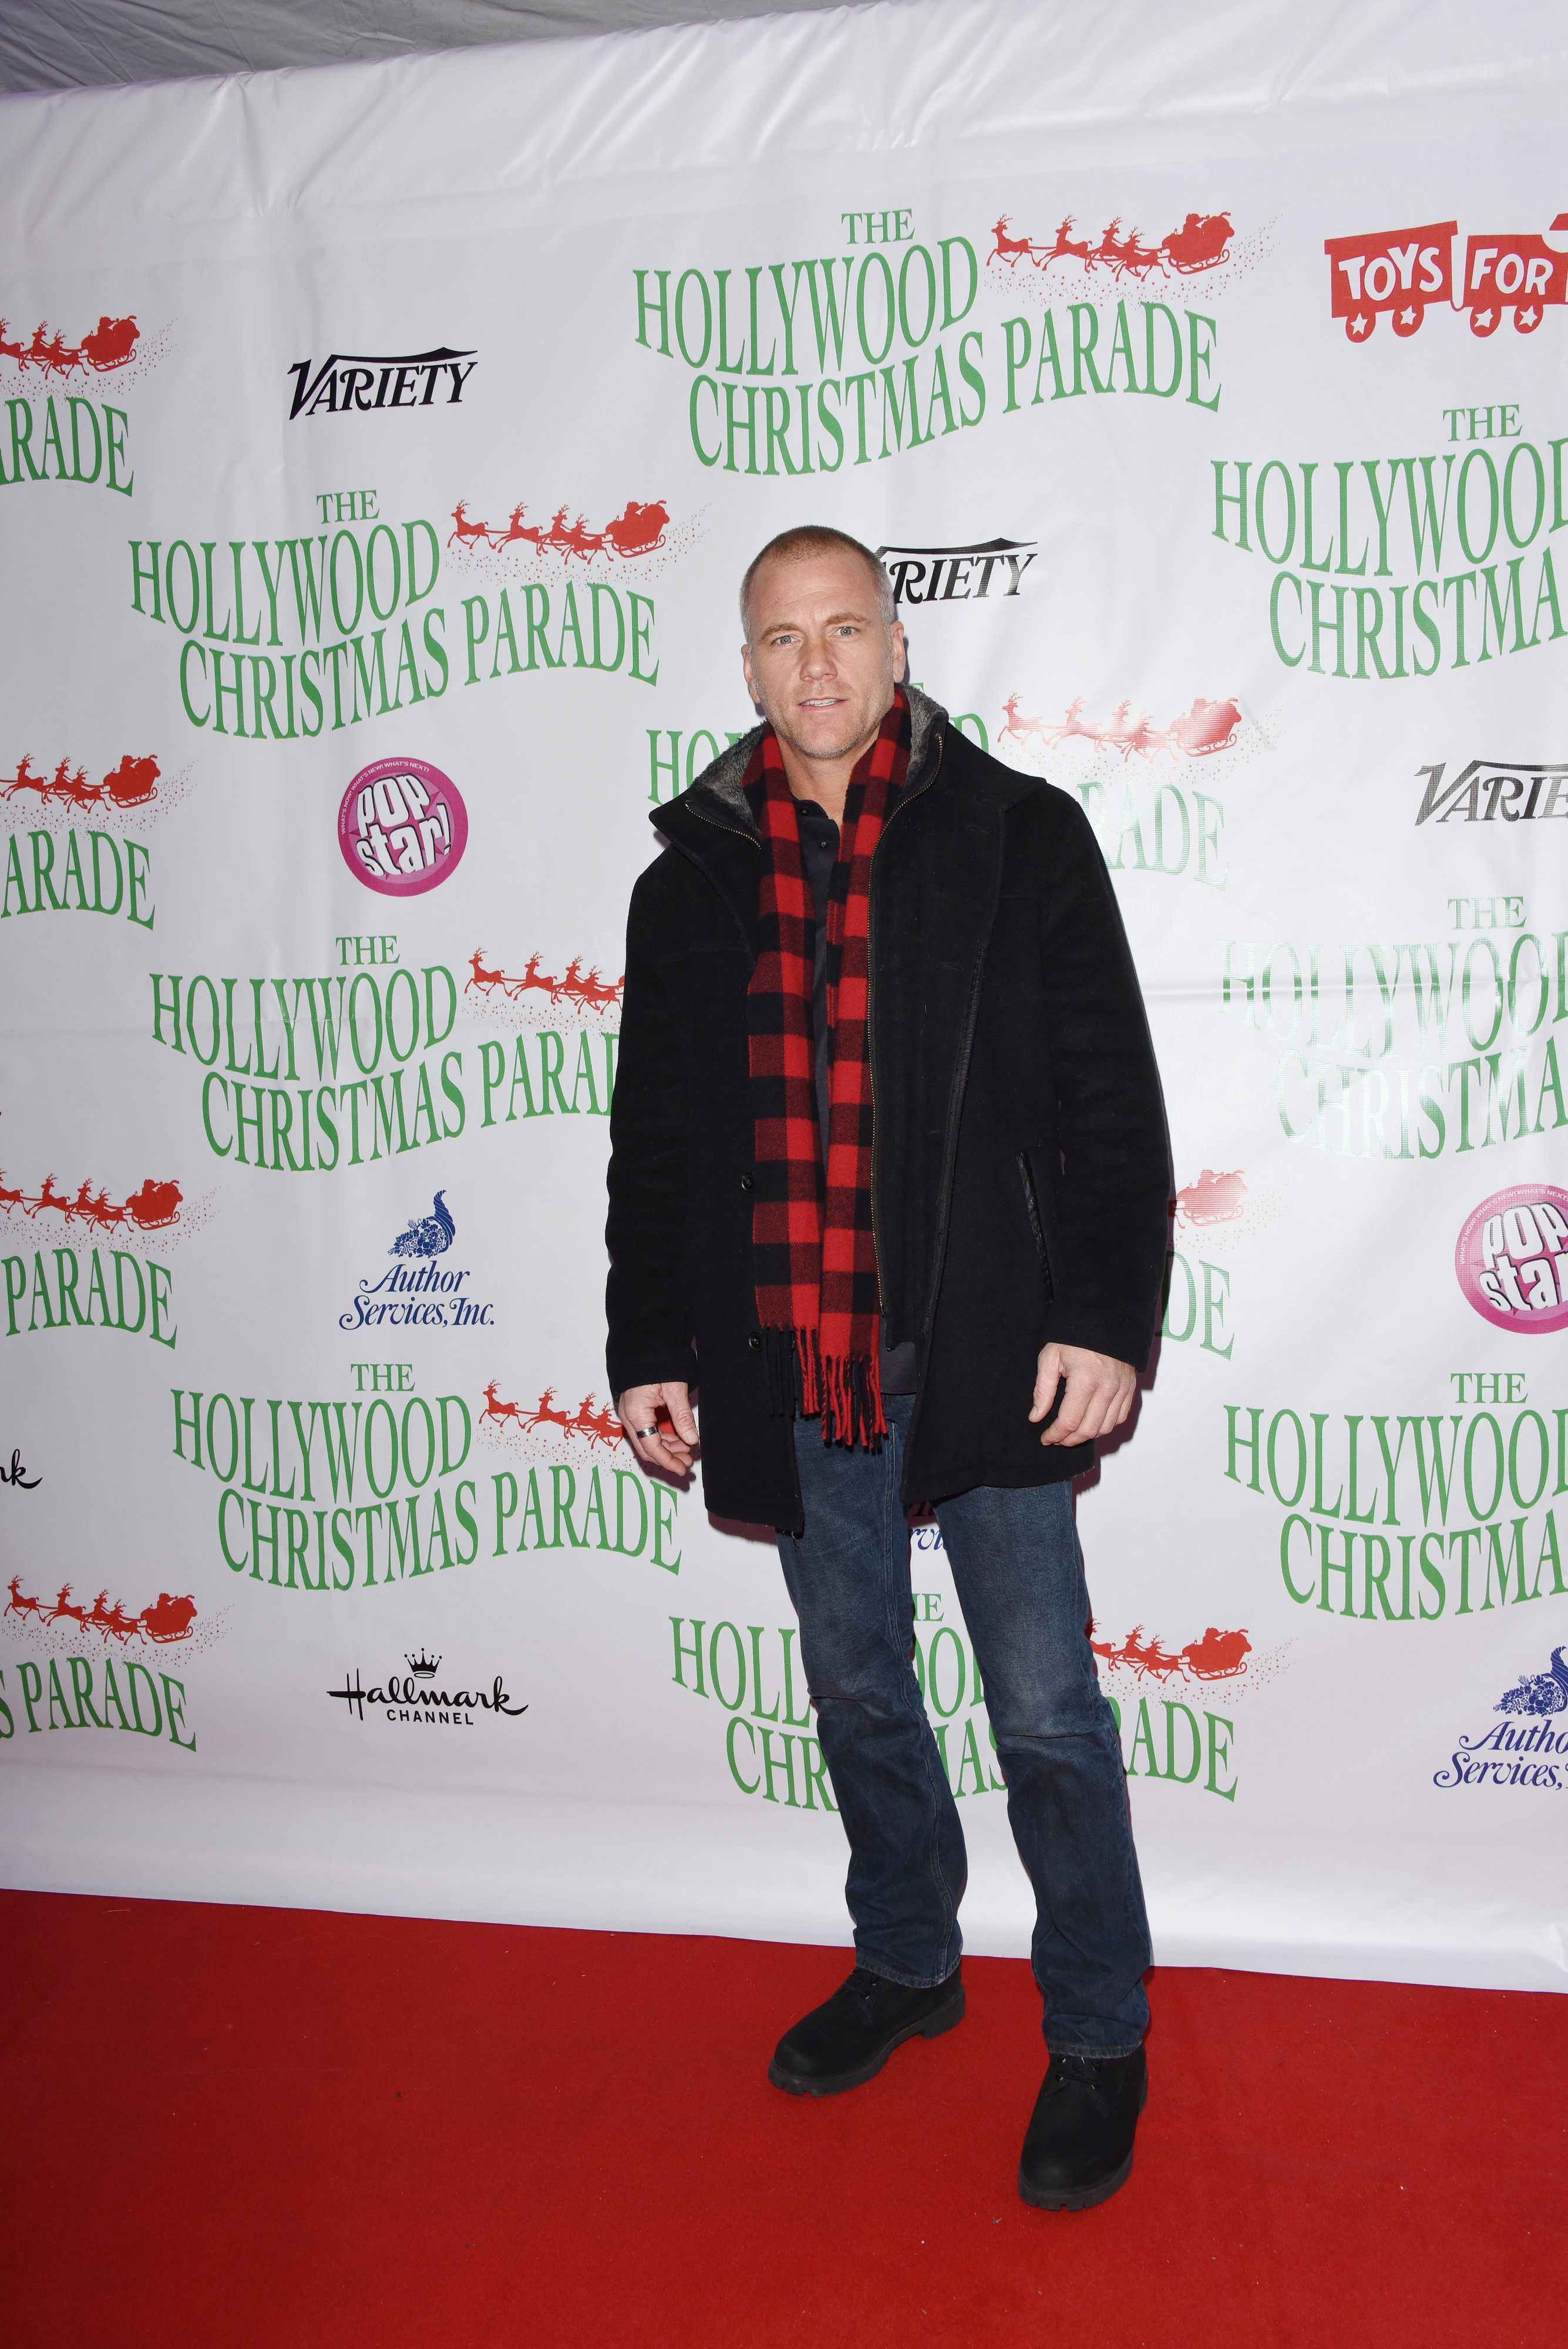 Sean Carrigan attends the 88th annual Hollywood Christmas Parade